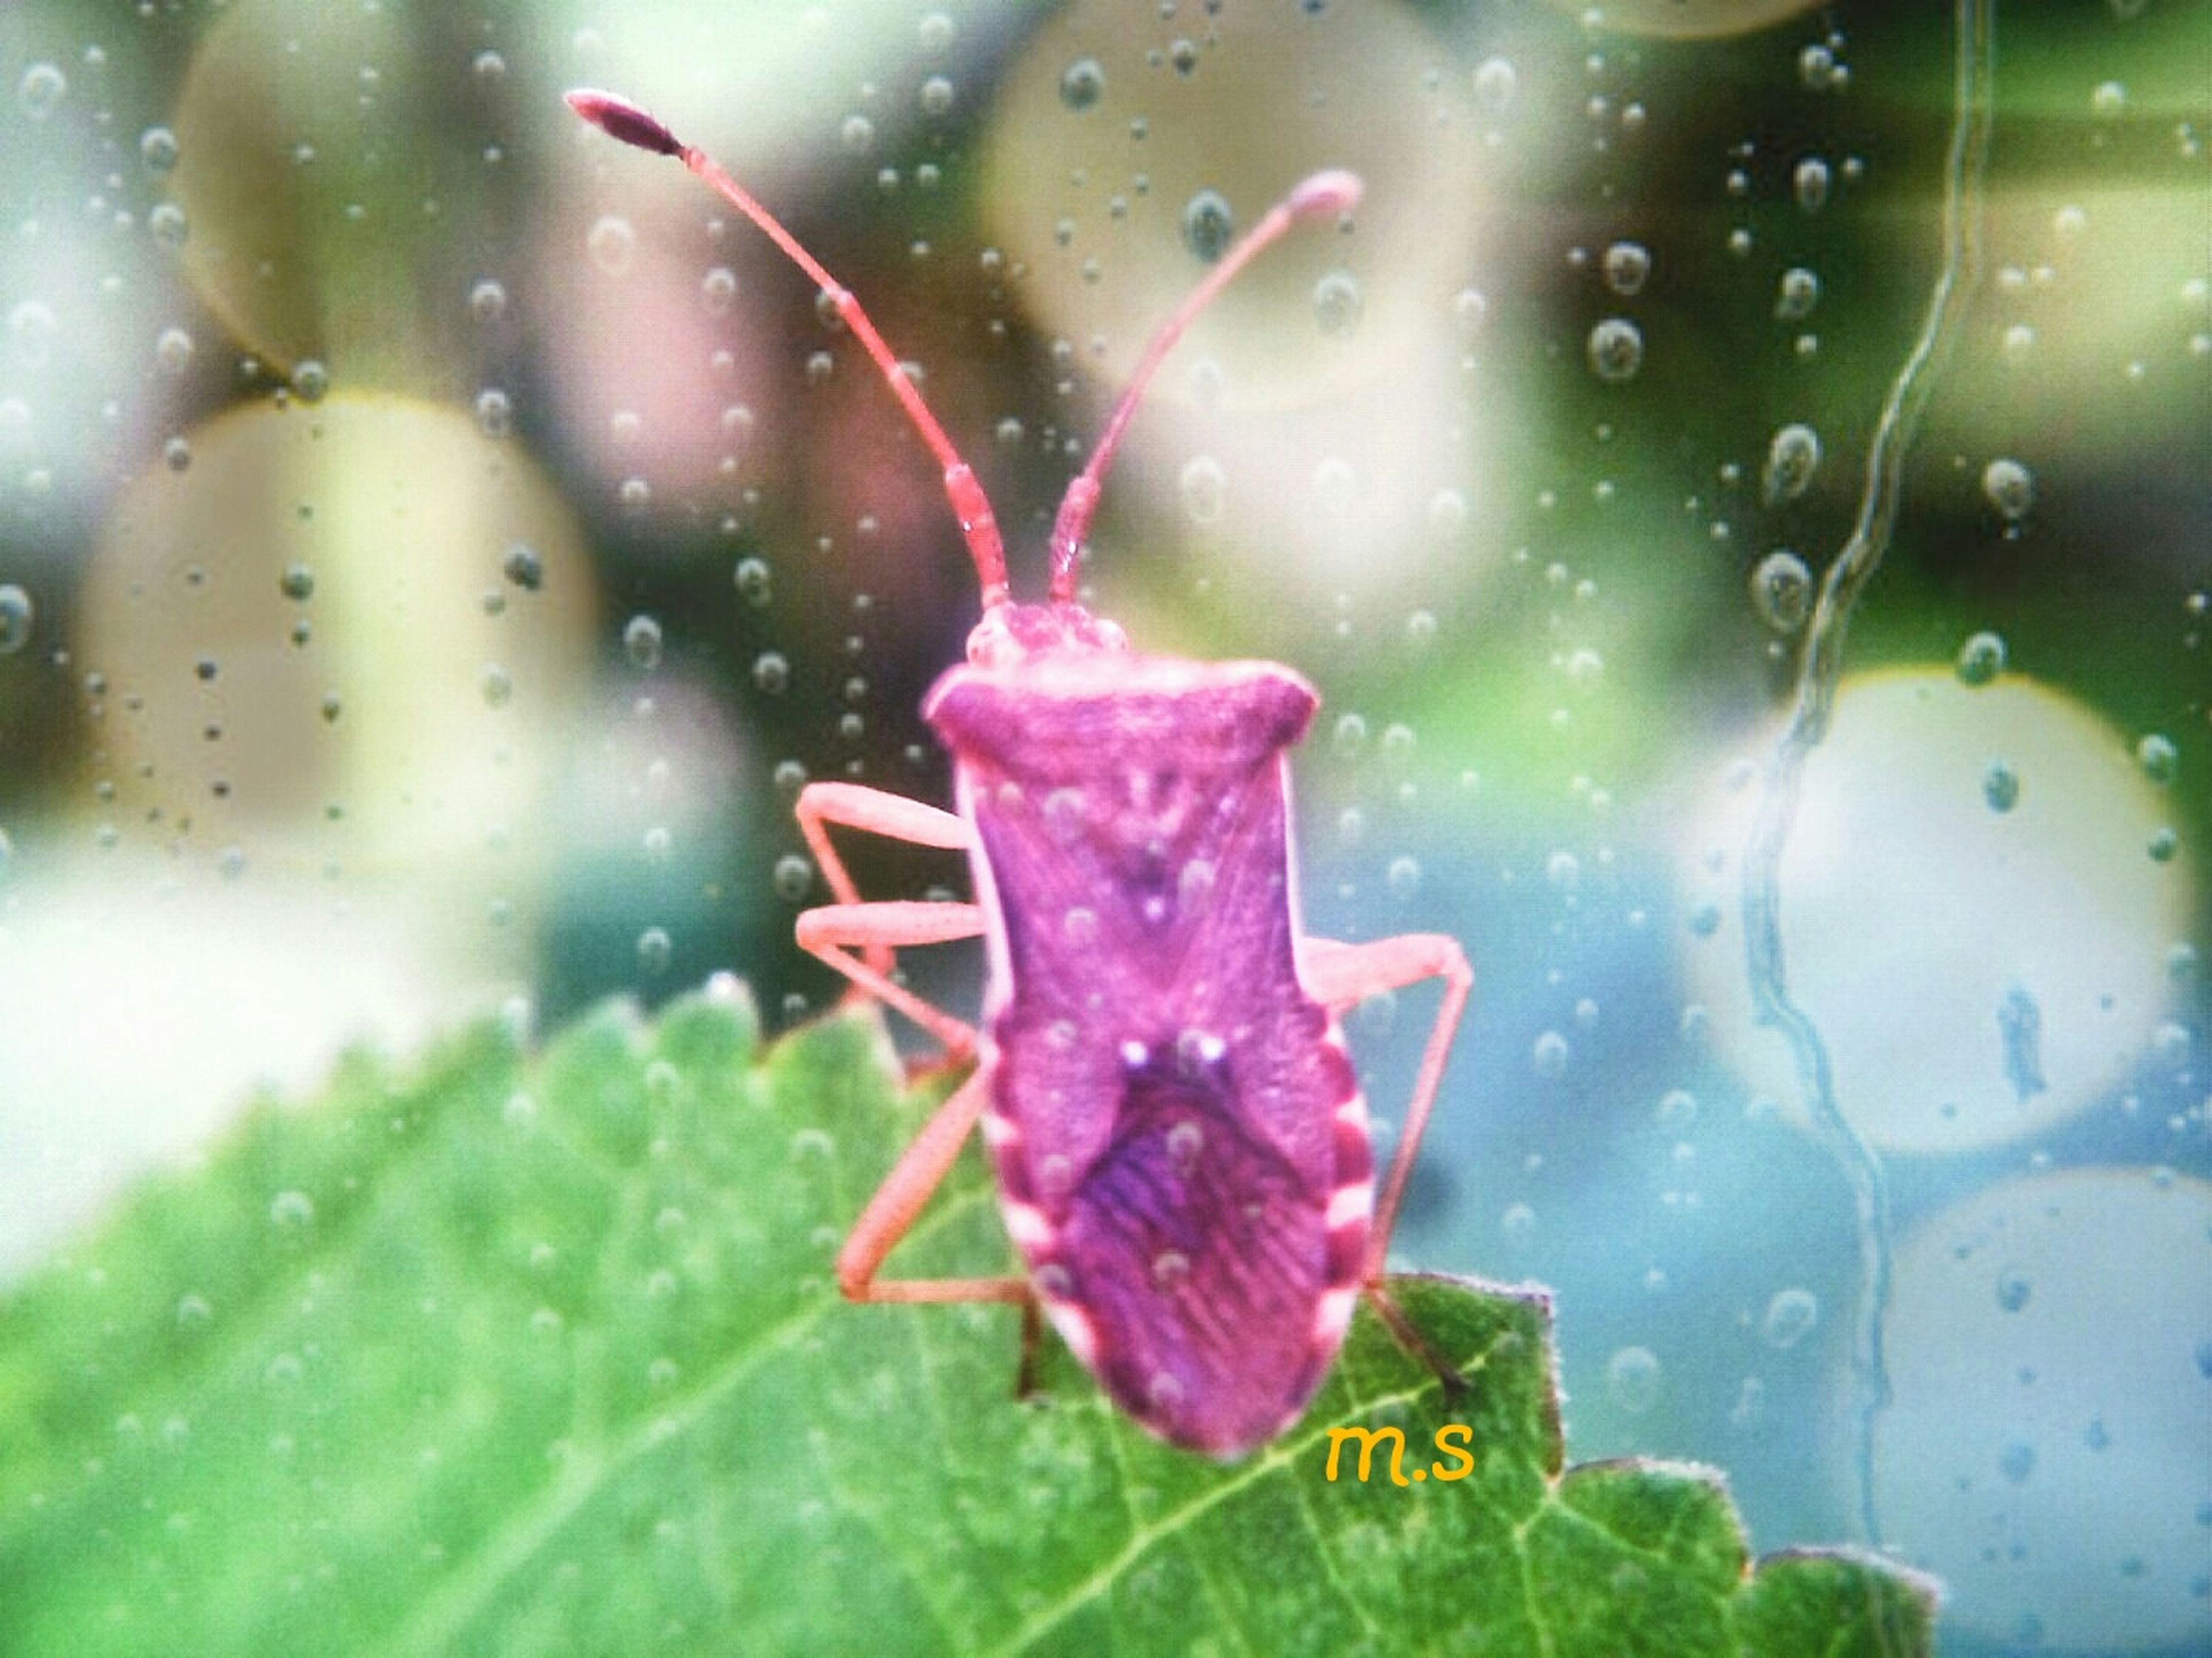 close-up, drop, water, wet, focus on foreground, red, pink color, leaf, flower, fragility, plant, freshness, transparent, green color, nature, growth, indoors, no people, day, glass - material